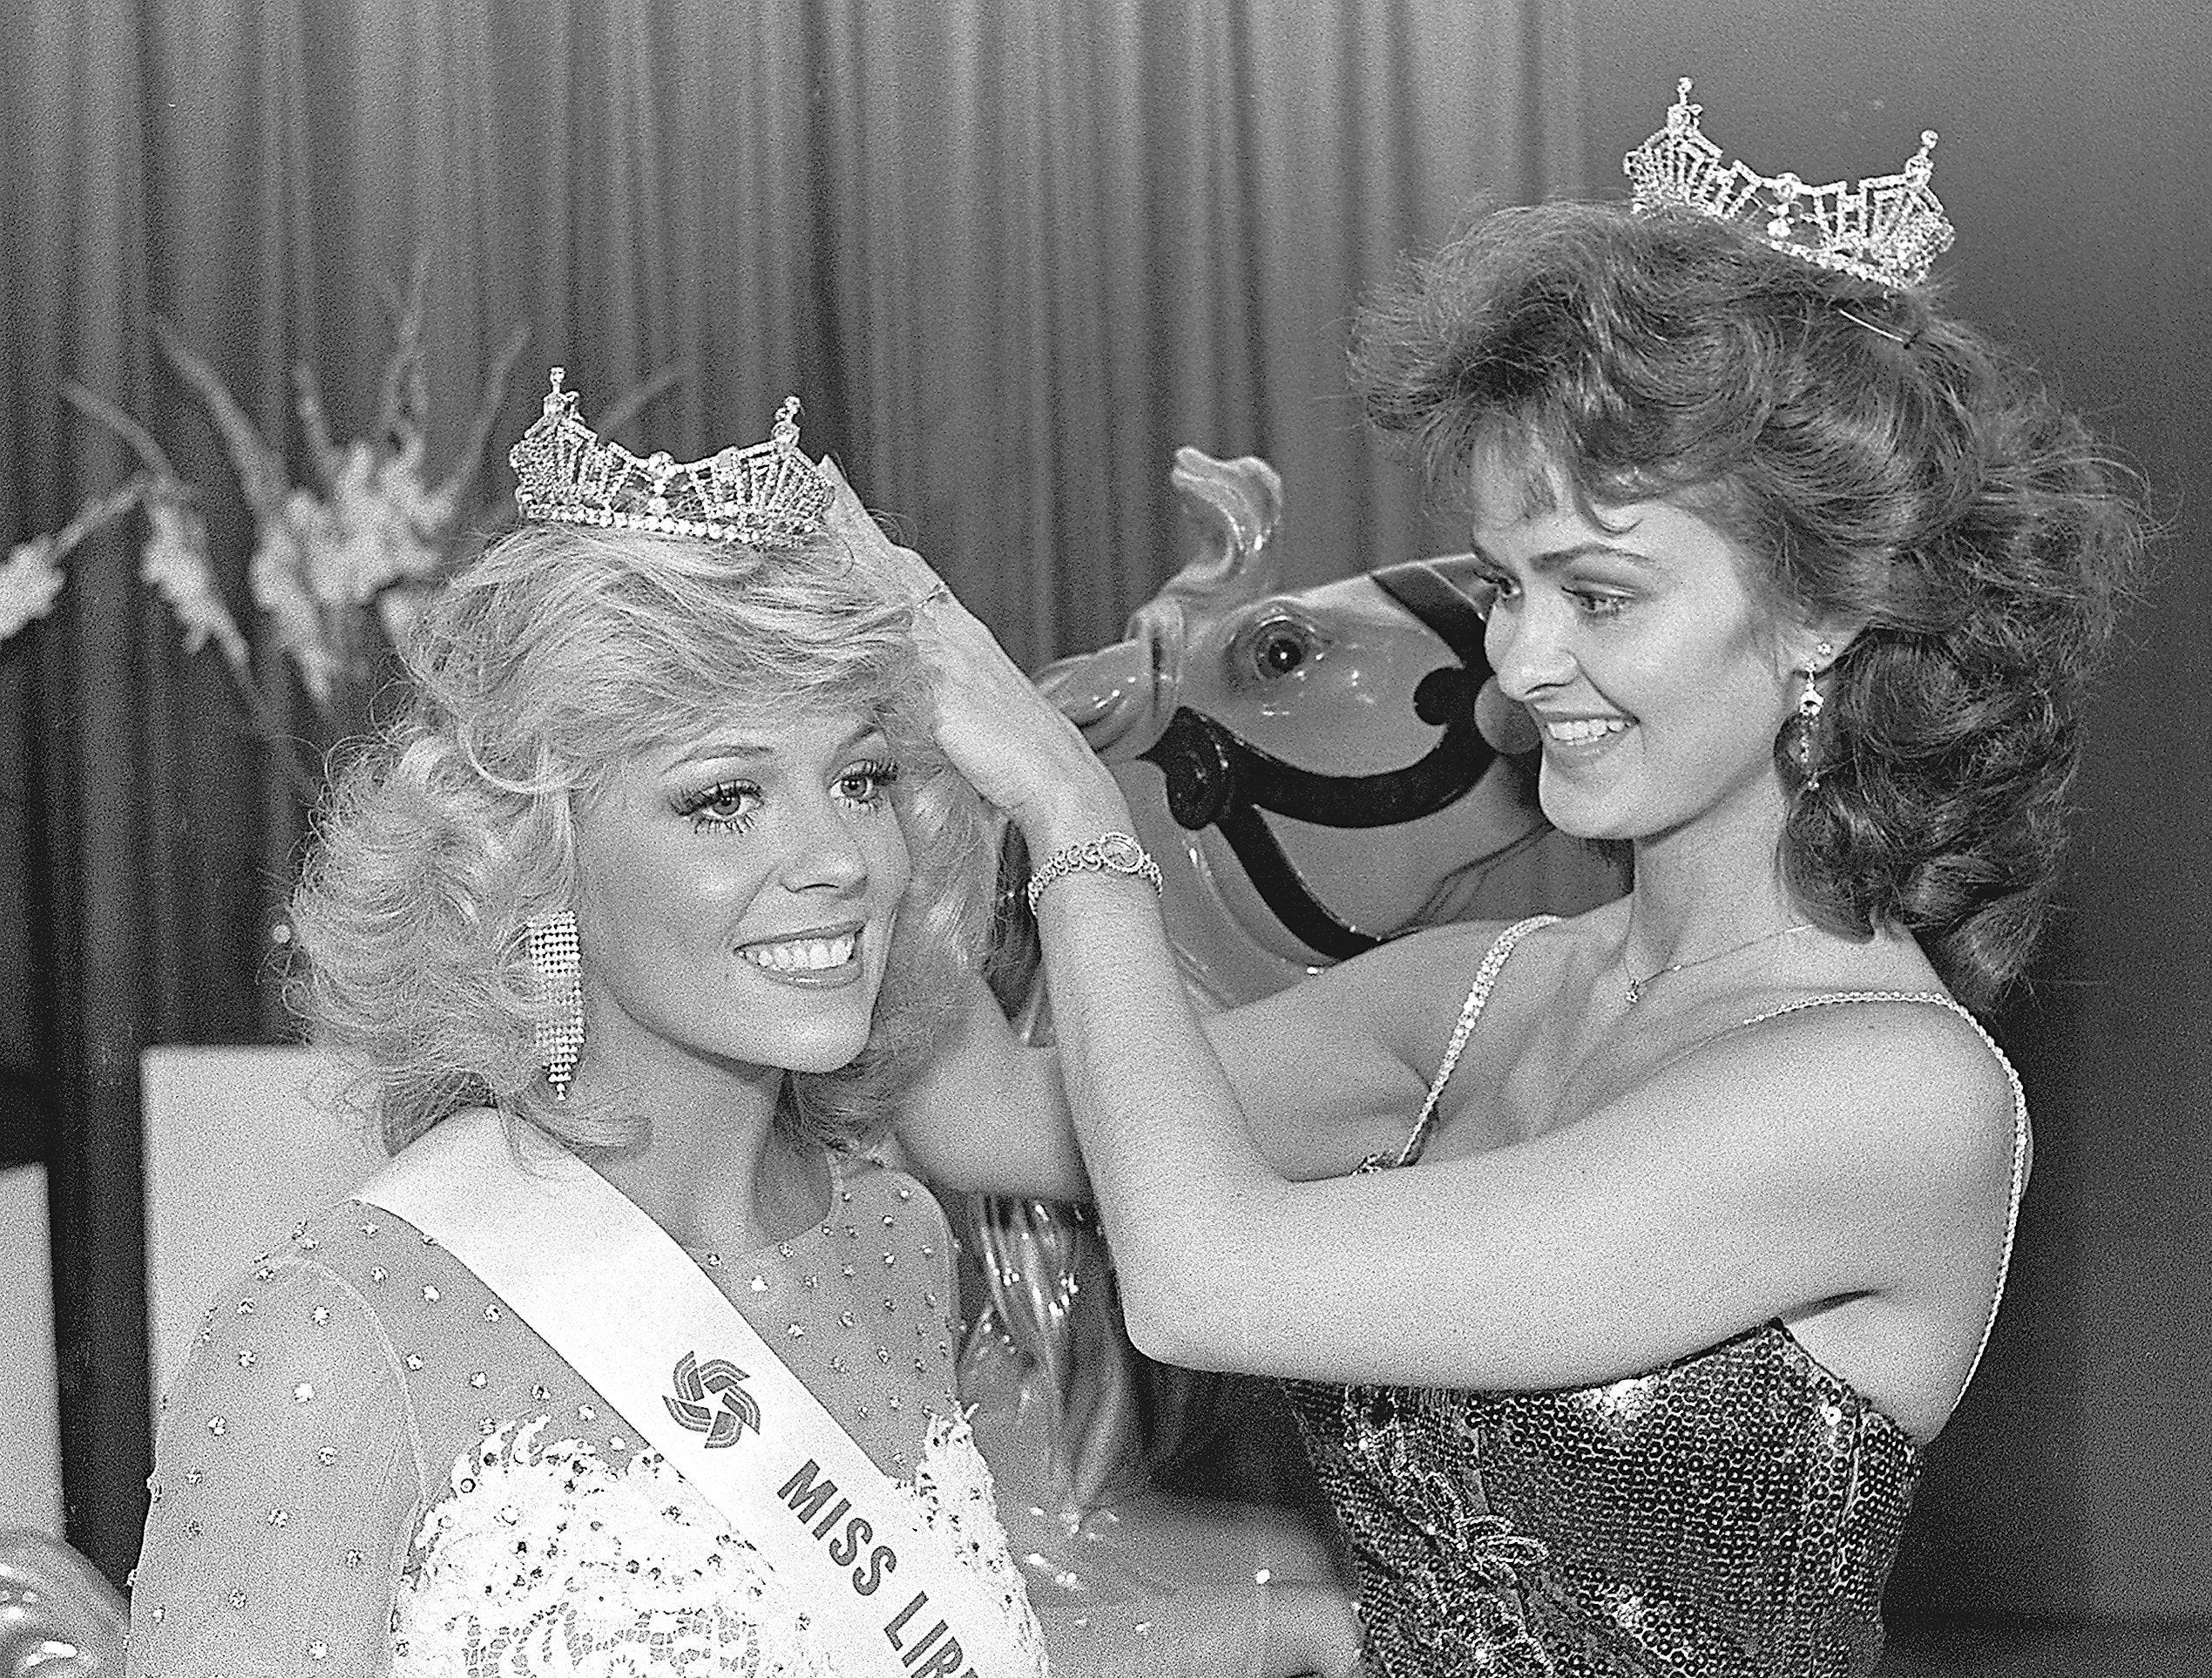 Sharon Russell, left, gets a hand from her predecessor, Susan Gail Biffle as she is crowned Miss Libertyland 1985 on 1 July 1984. First runner-up was Kris Beasley and second runner-up was Robbie McDaniel. Miss Russell, 21, daughter of Mr. and Mrs. Bobby Russell of Raleigh, is a senior studying communications at Memphis State University. She was 1983 Miss Memphis State.